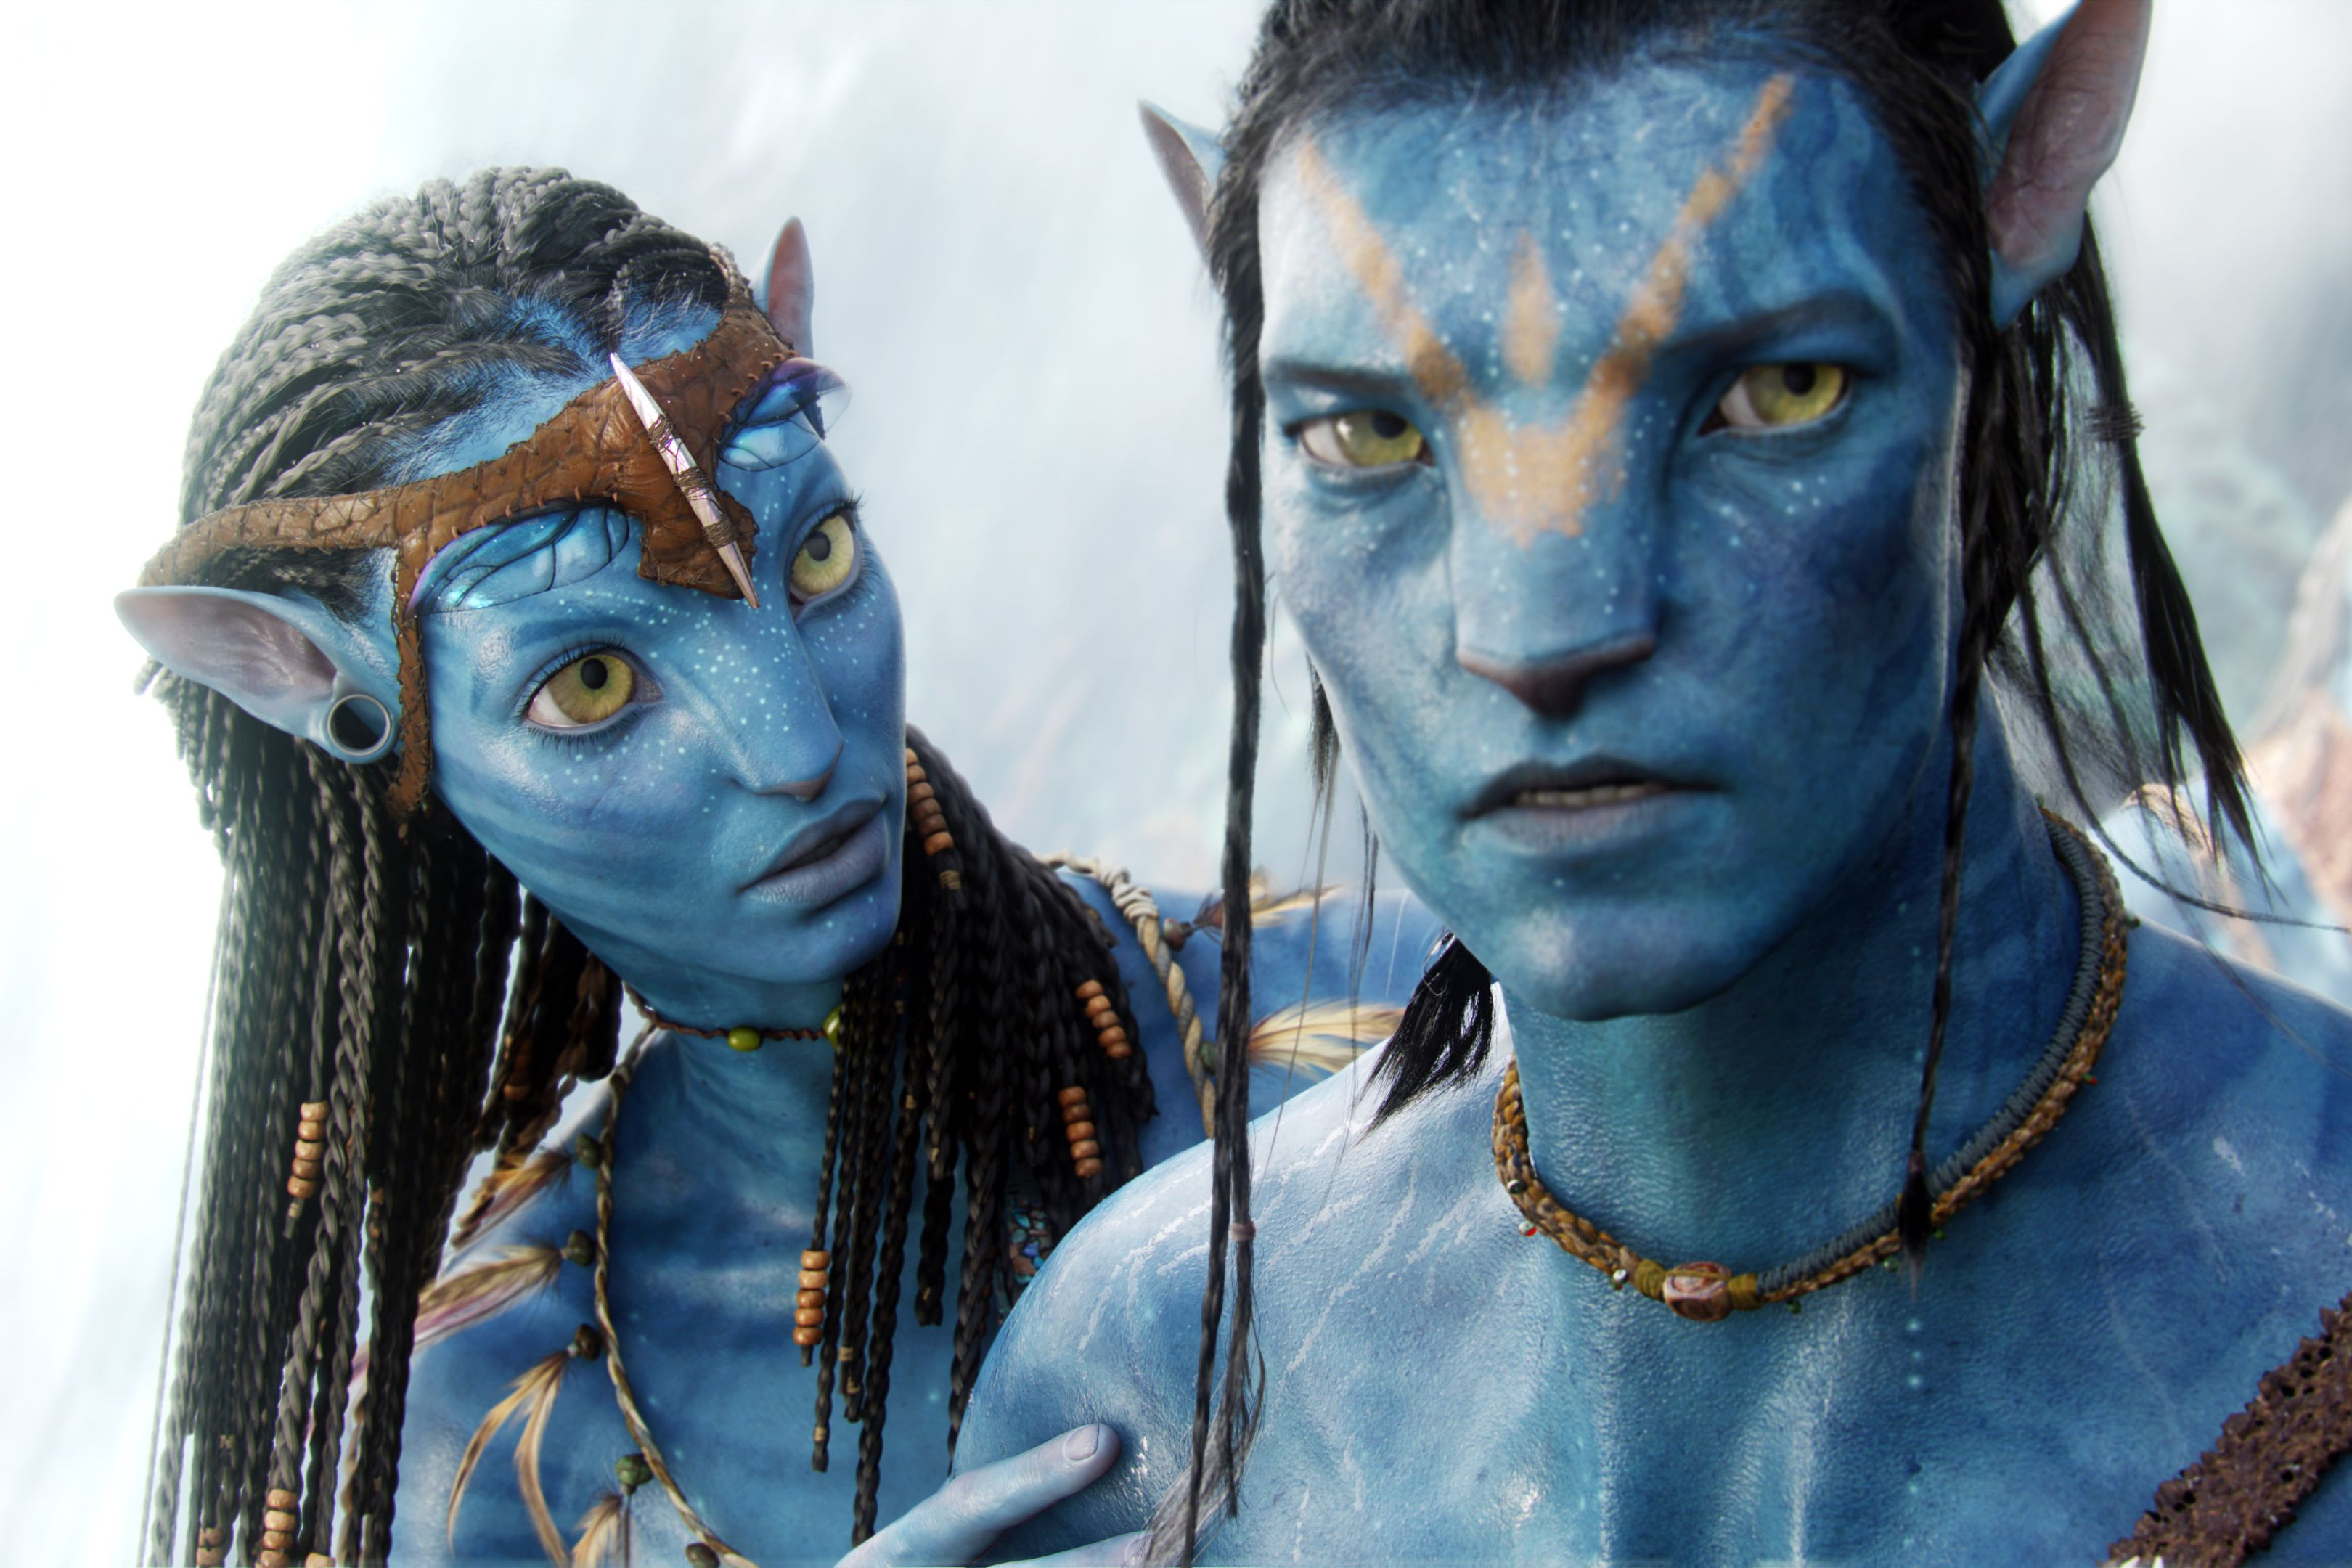 AVATAR, from left: Zoe Saldana, Sam Worthington, 2009, TM & Copyright ©20th Century Fox. All rights